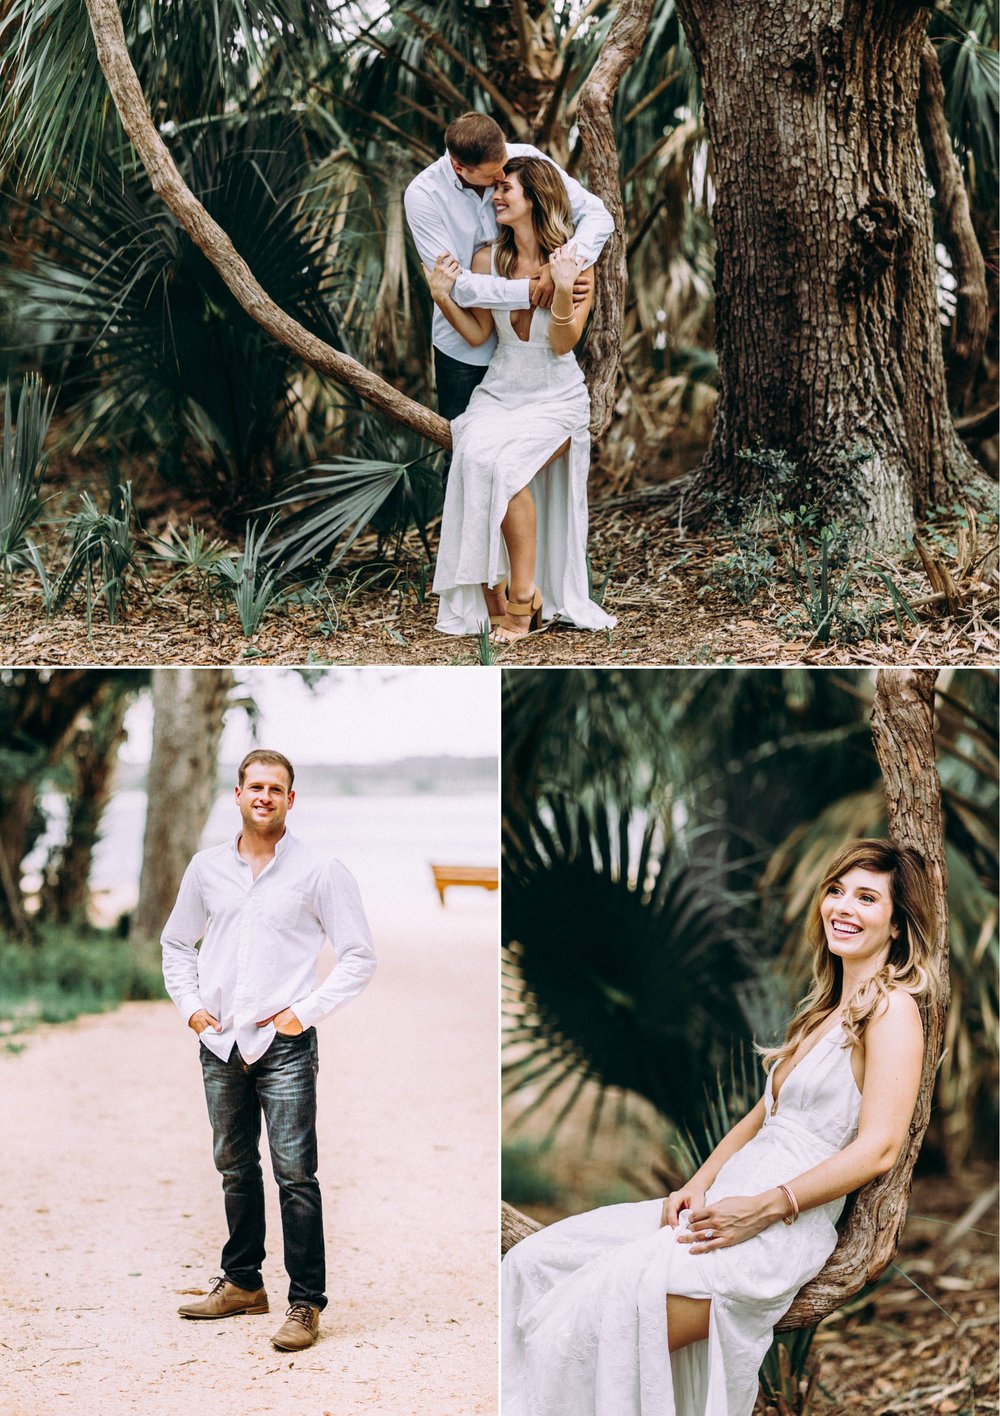 Bohemian Chic Summer Engagement Beach Garden Washington Oaks Florida 7.jpg